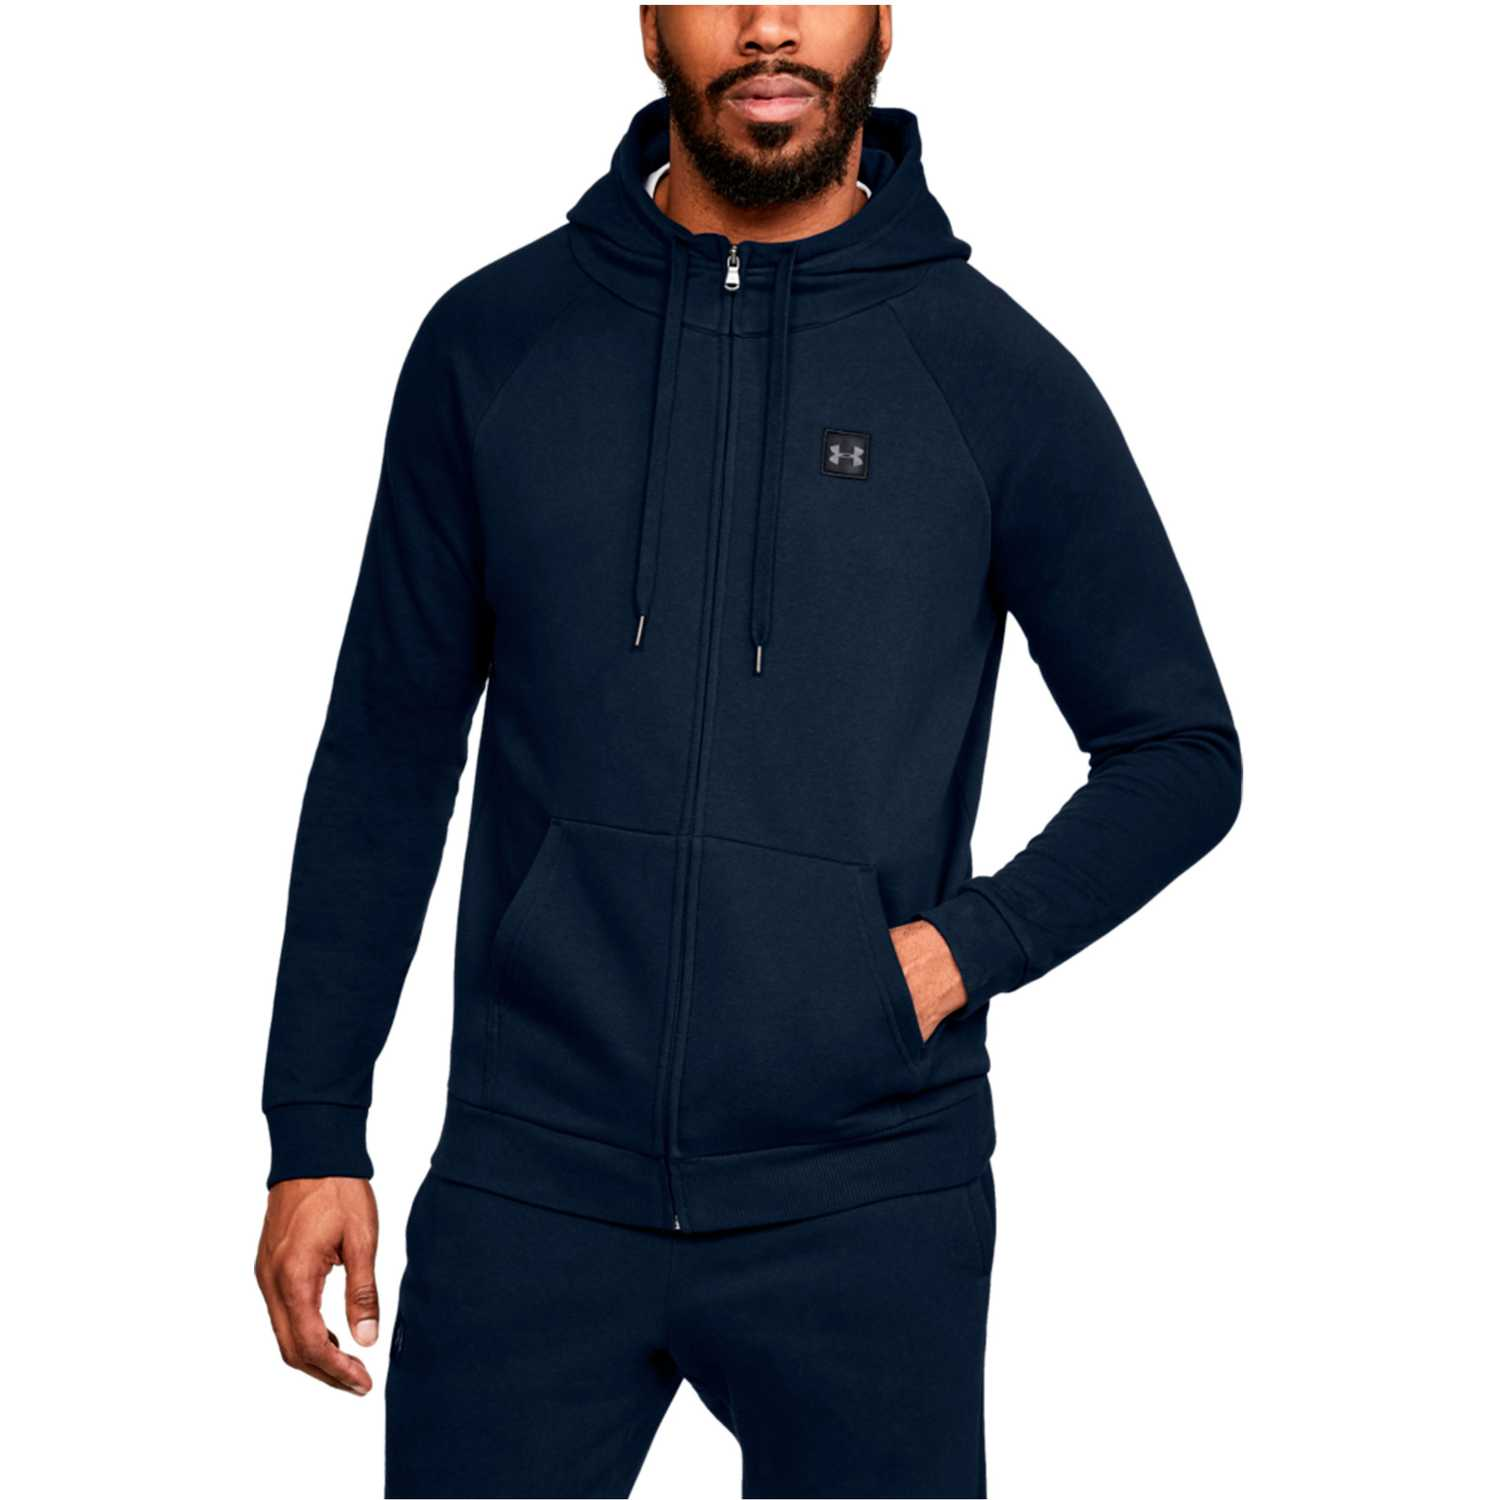 Deportivo de Niña Under Armour Navy rival fleece fz hoodie-nvy